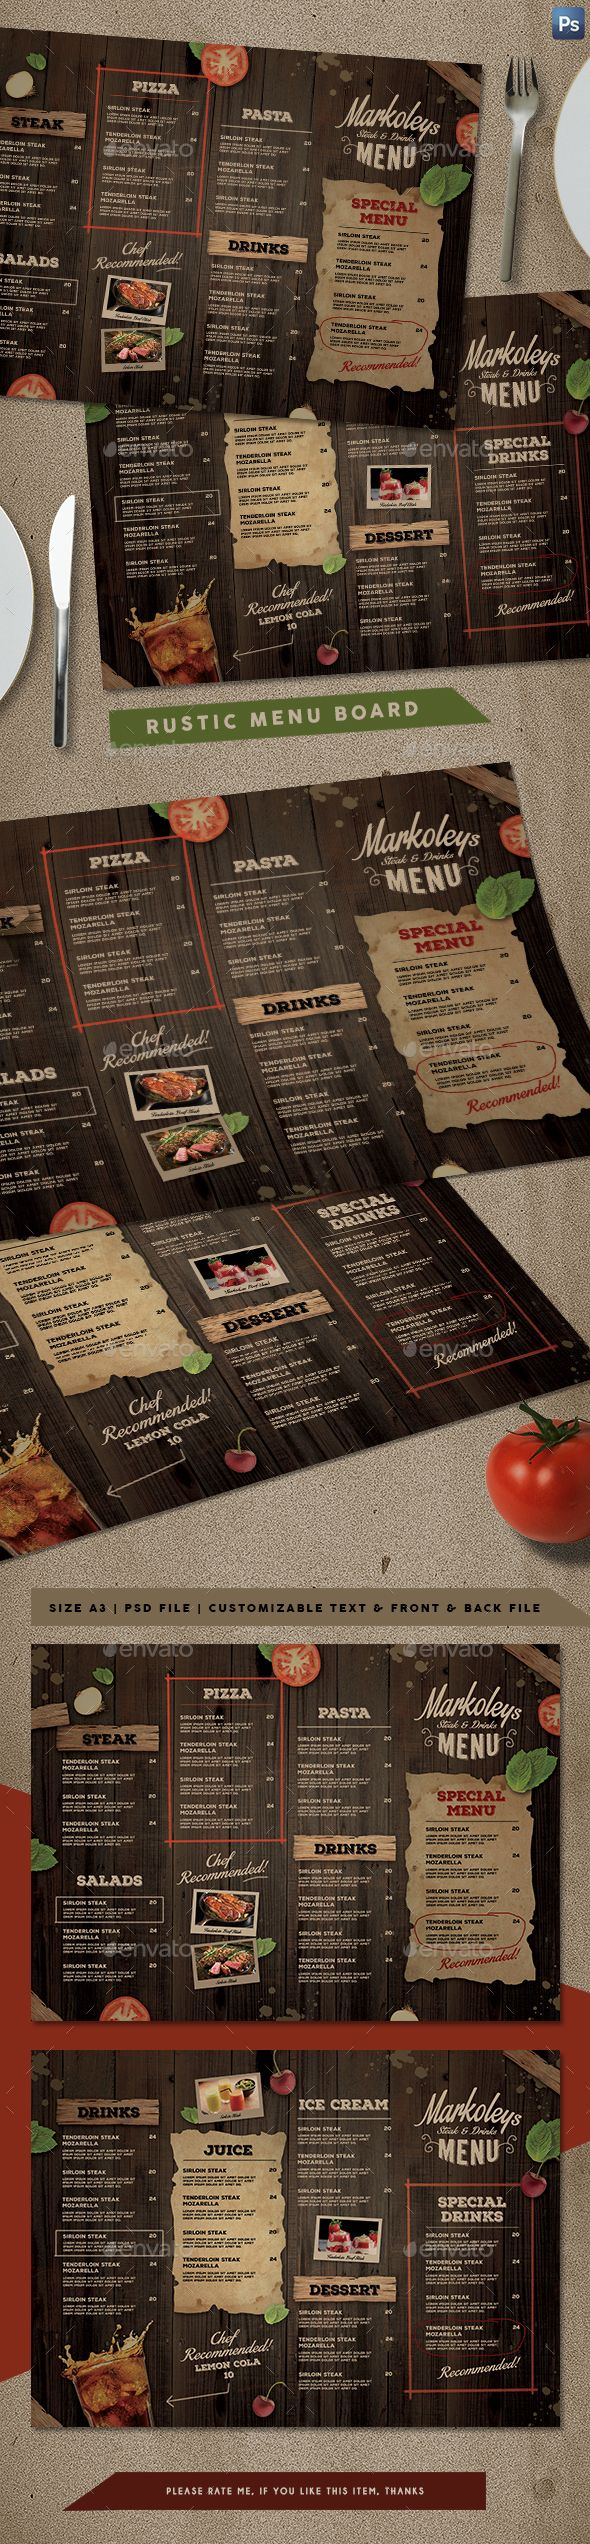 Rustic Cafe Menu Board | Diseño de menu, Restaurante y Identidad visual